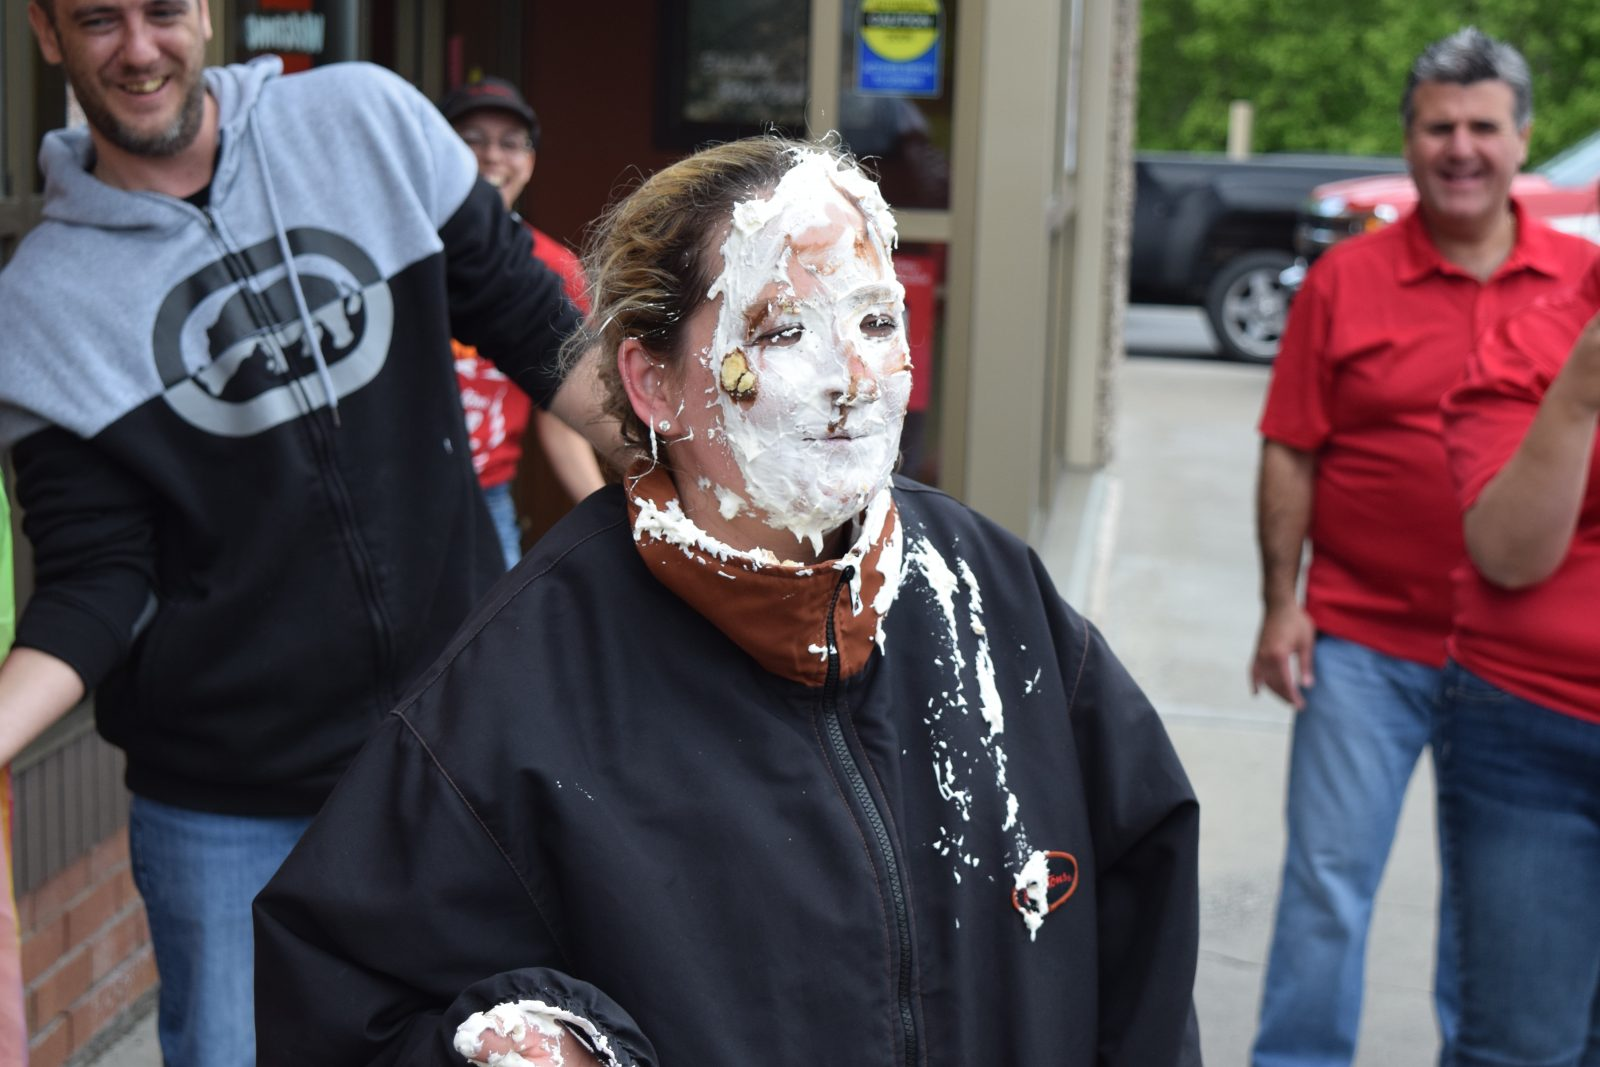 Pie in the face on Tim Hortons Camp Day